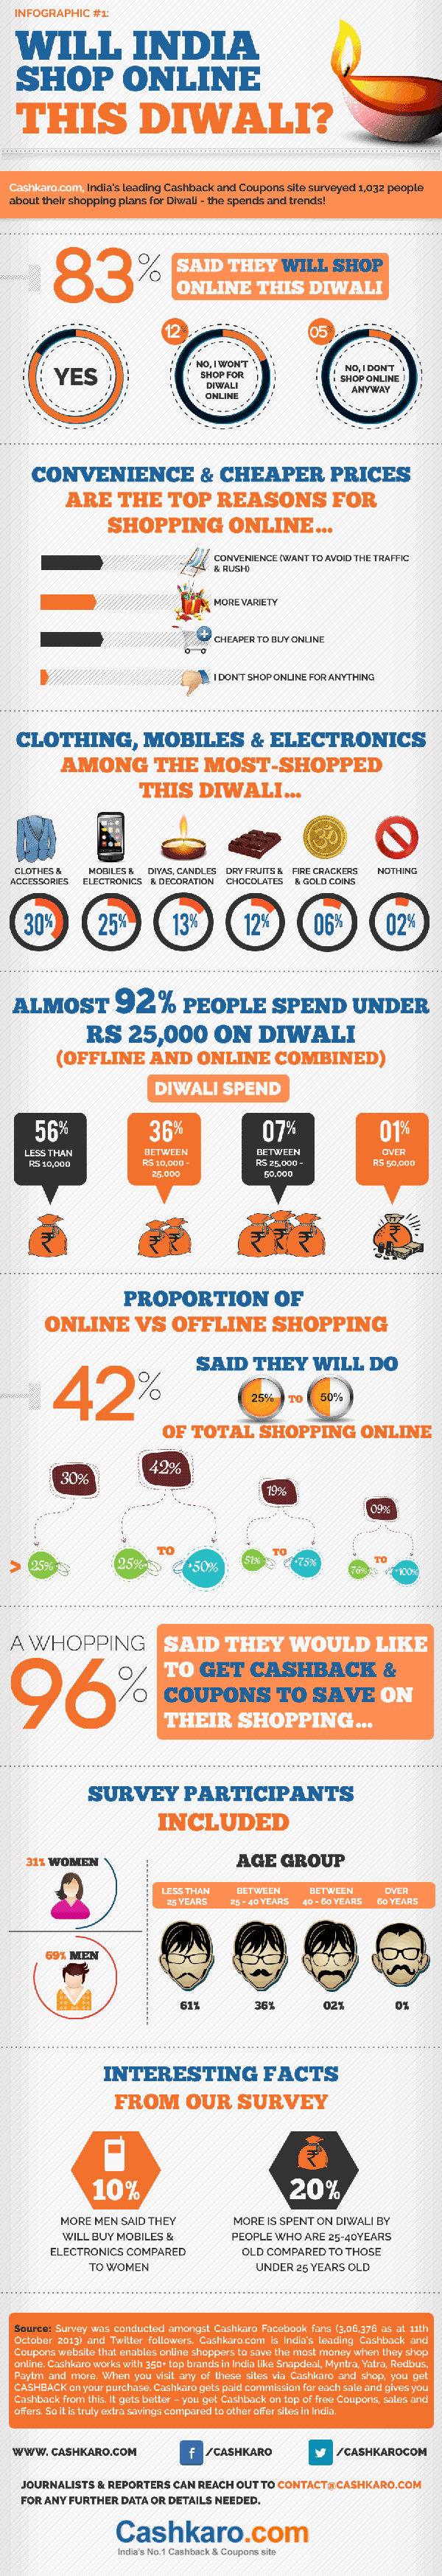 http://www.indianweb2.com/2013/10/interesting-diwali-online-shopping-trends-2013-infographic/